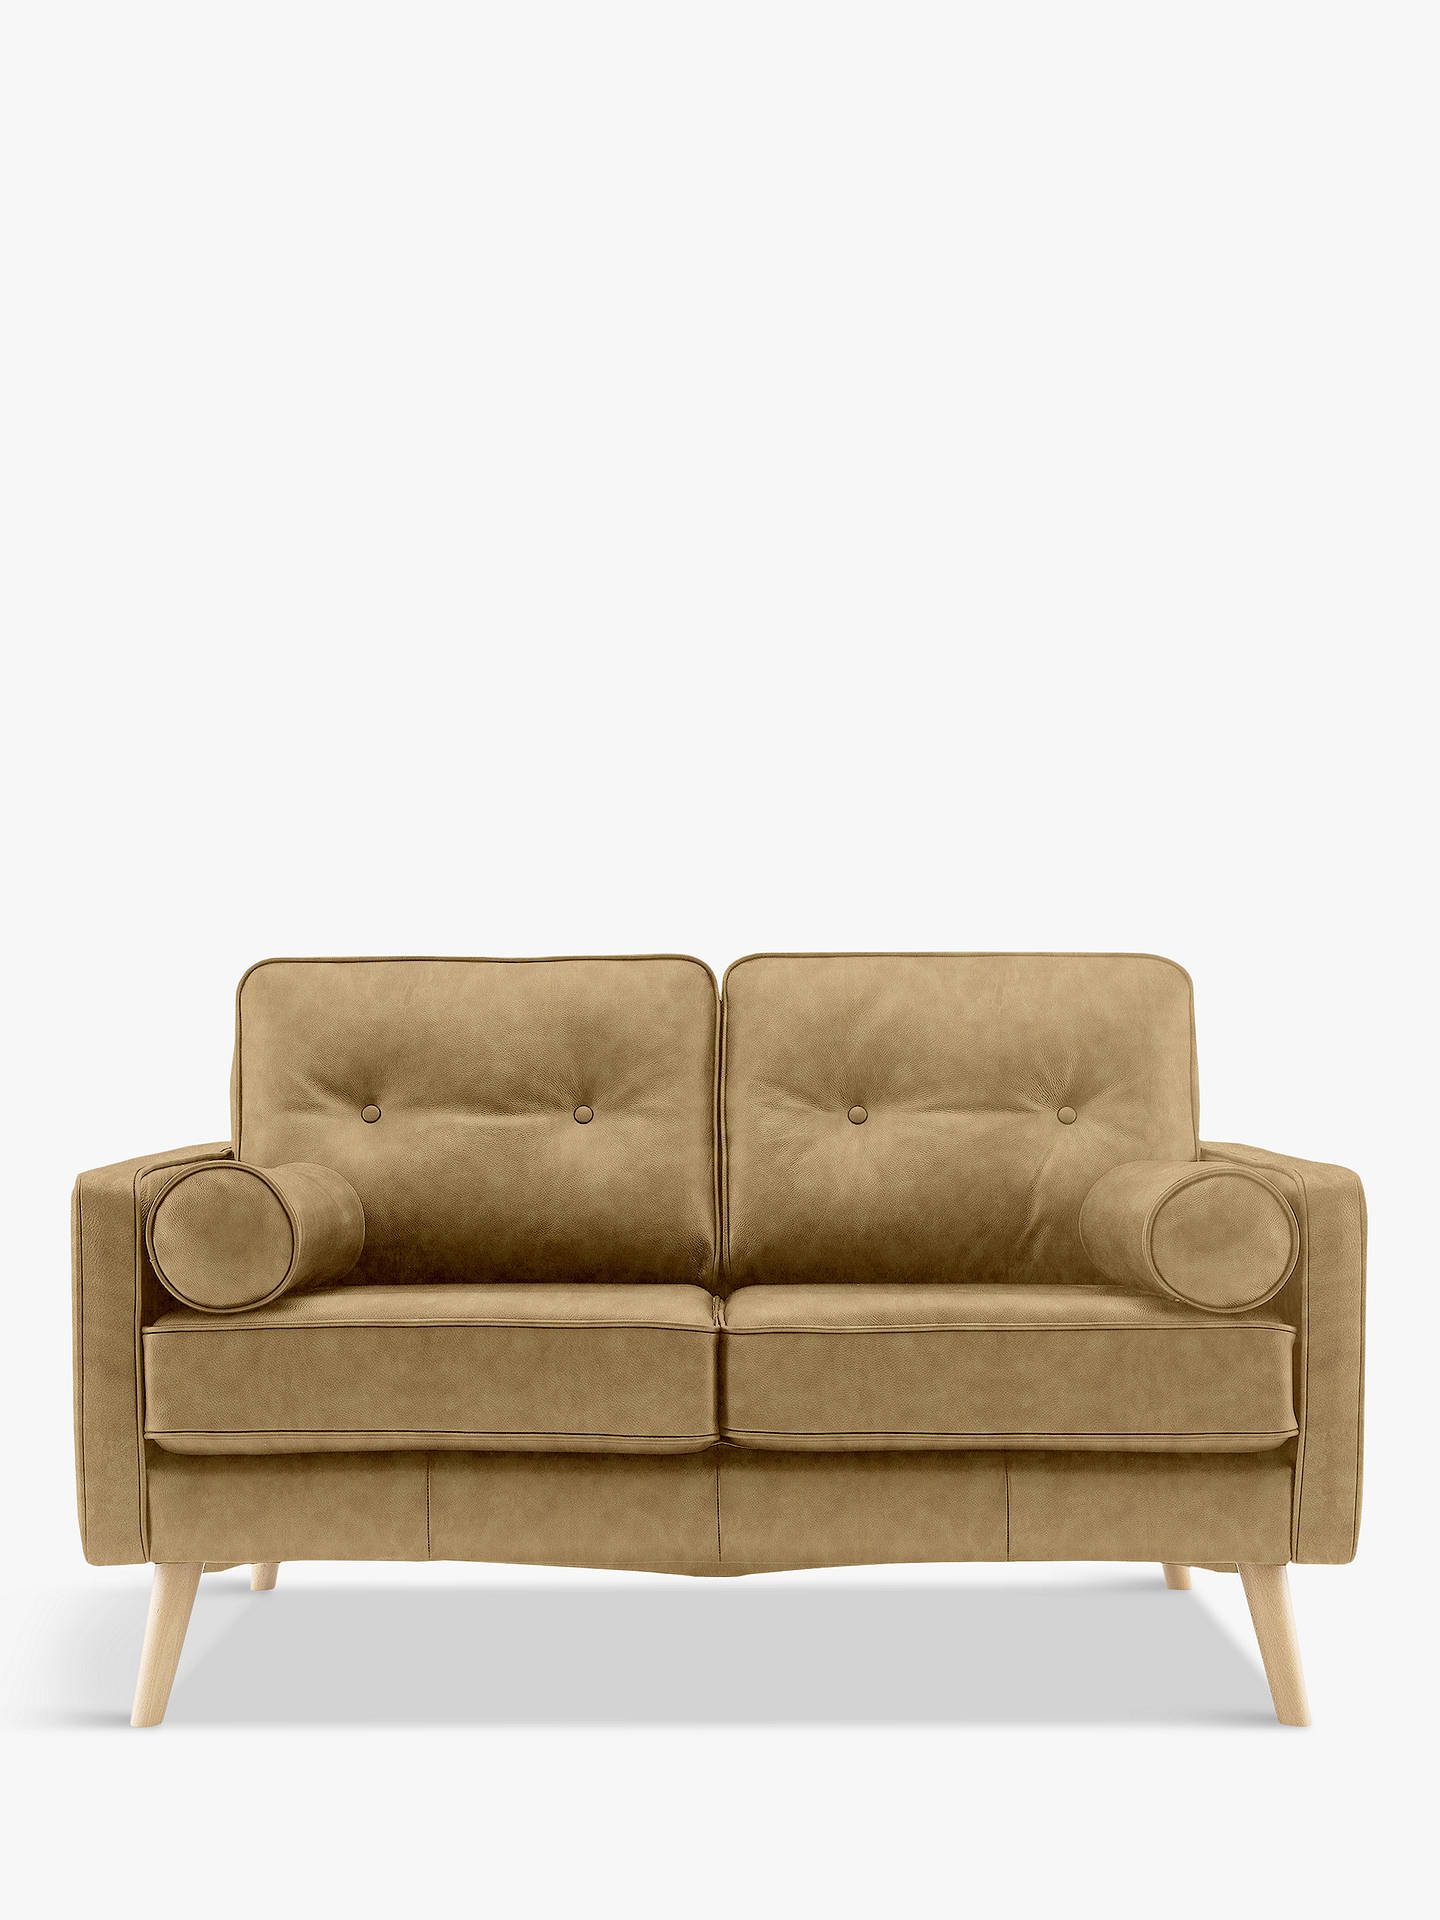 G Plan Vintage The Sixty Five Small 2 Seater Leather Sofa Regent Sand At John Lewis Partners